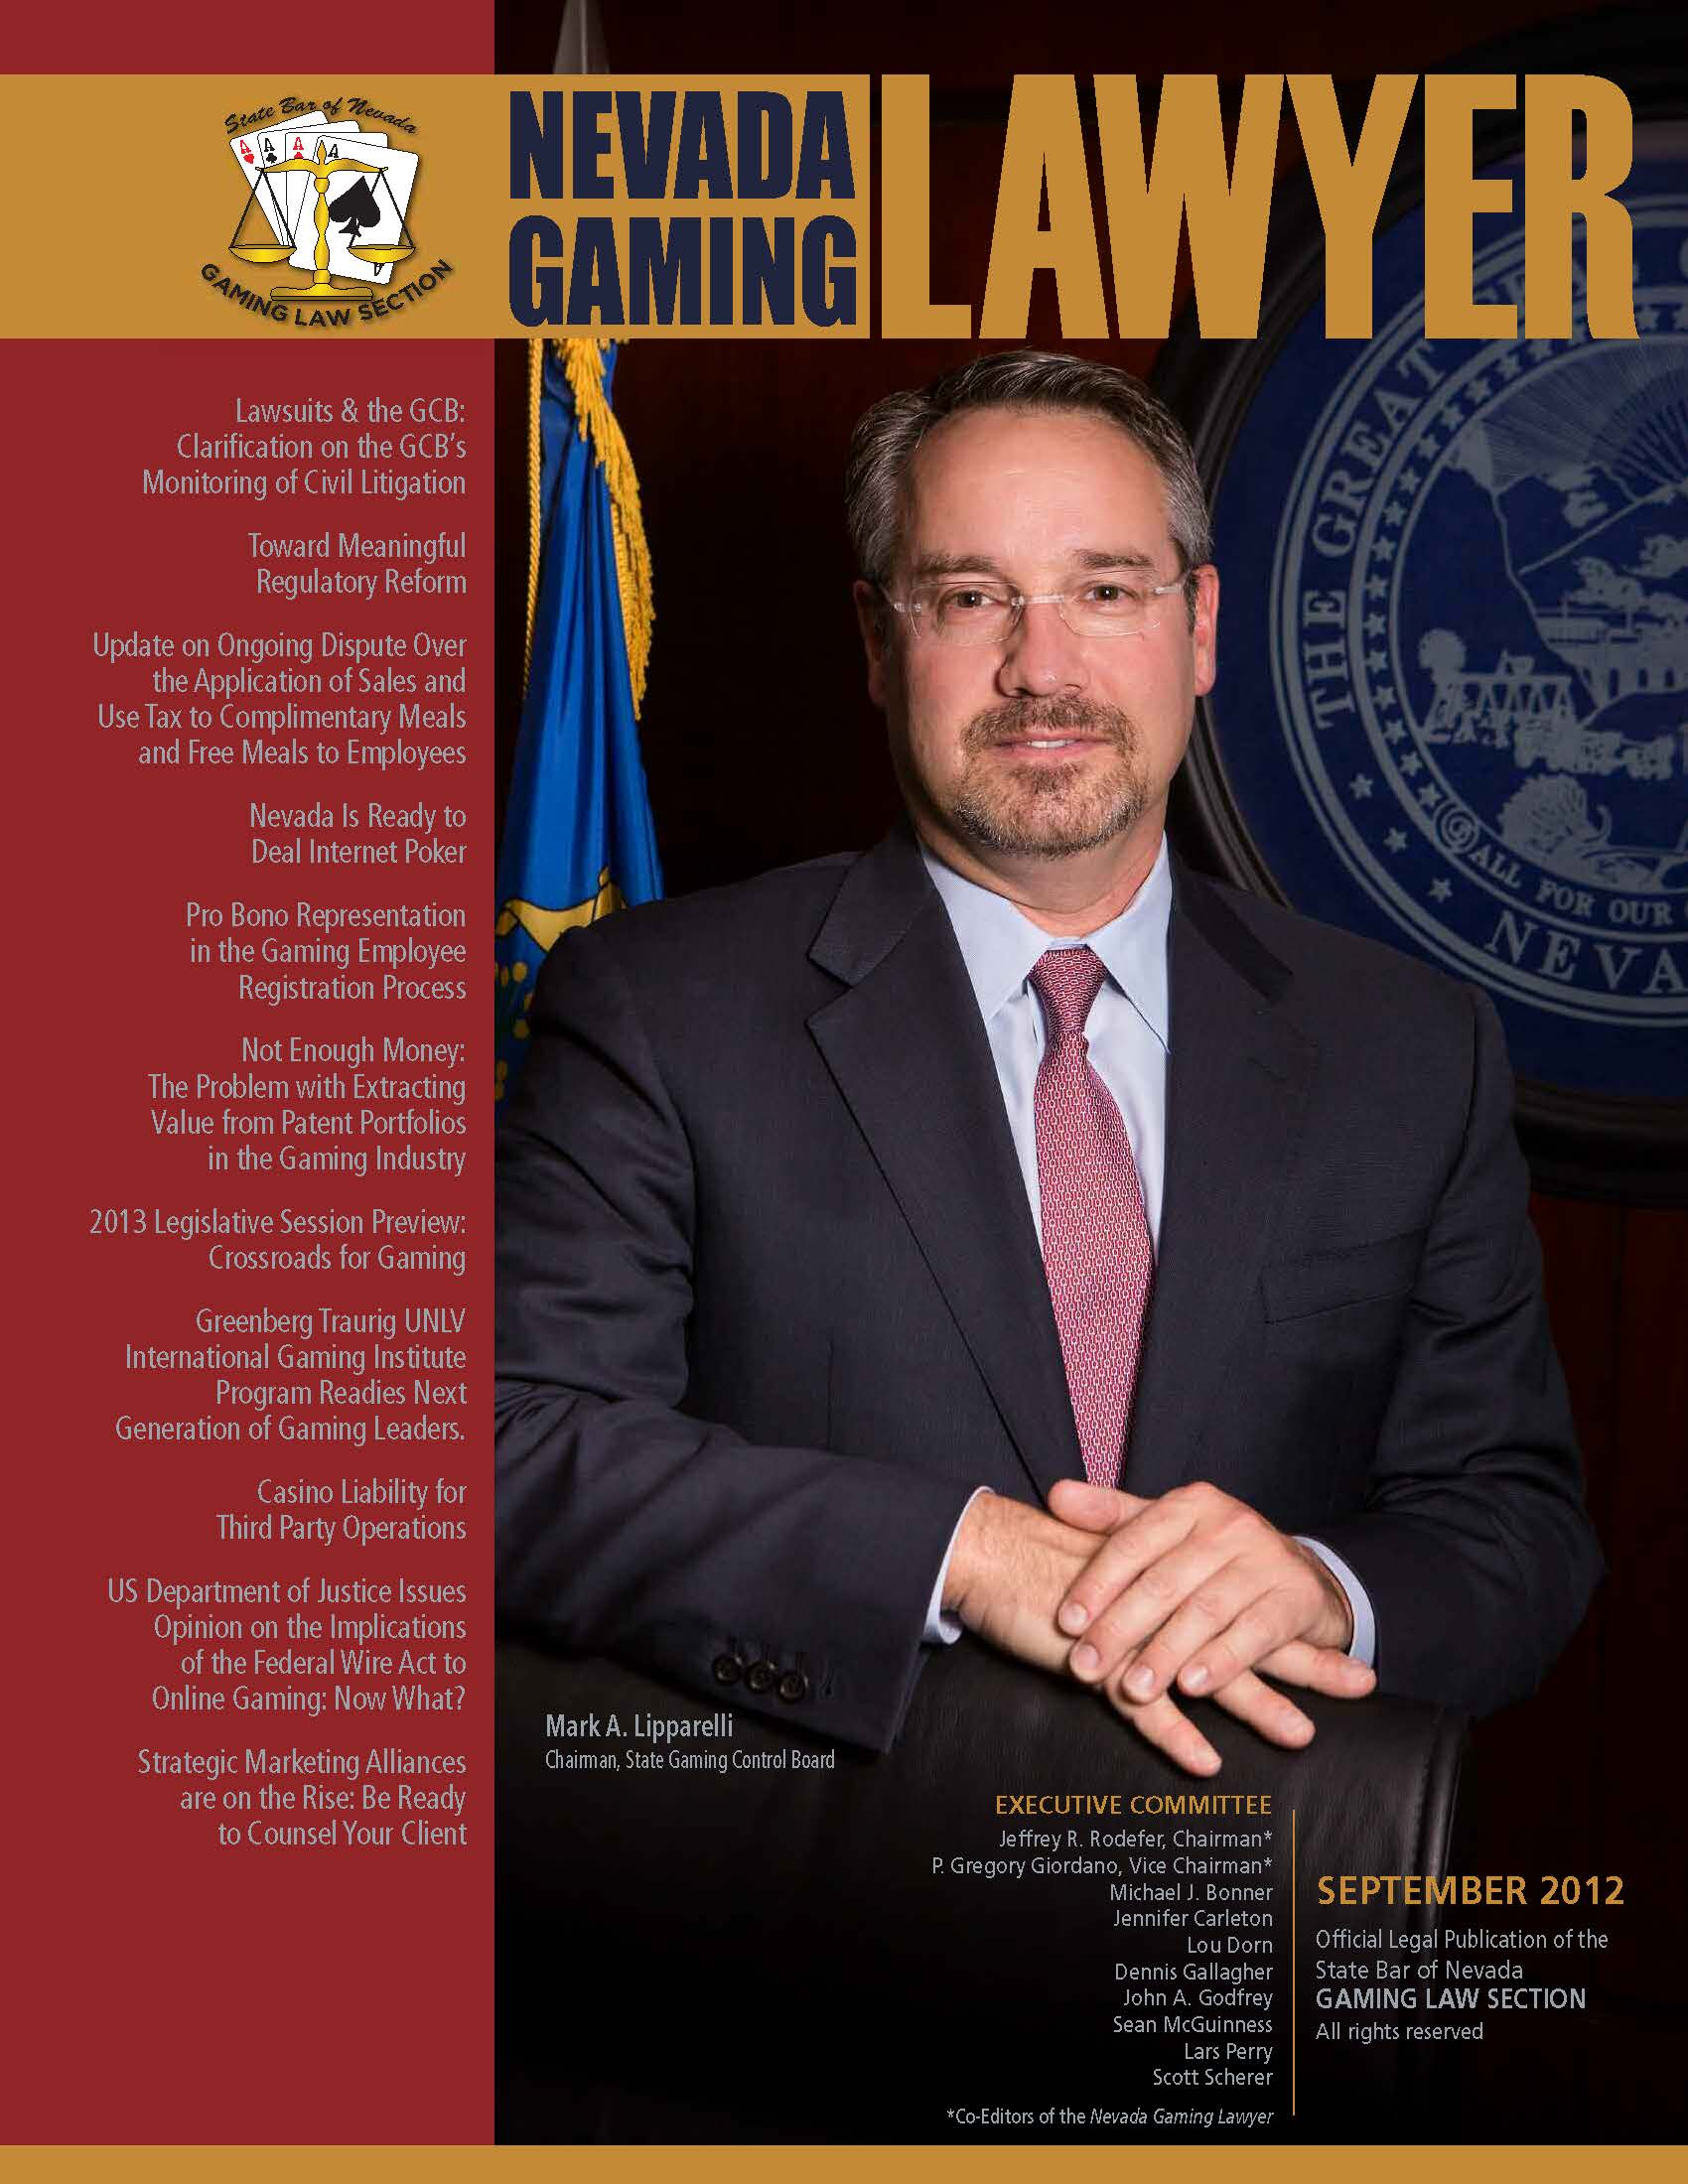 Nevada Gaming Lawyer